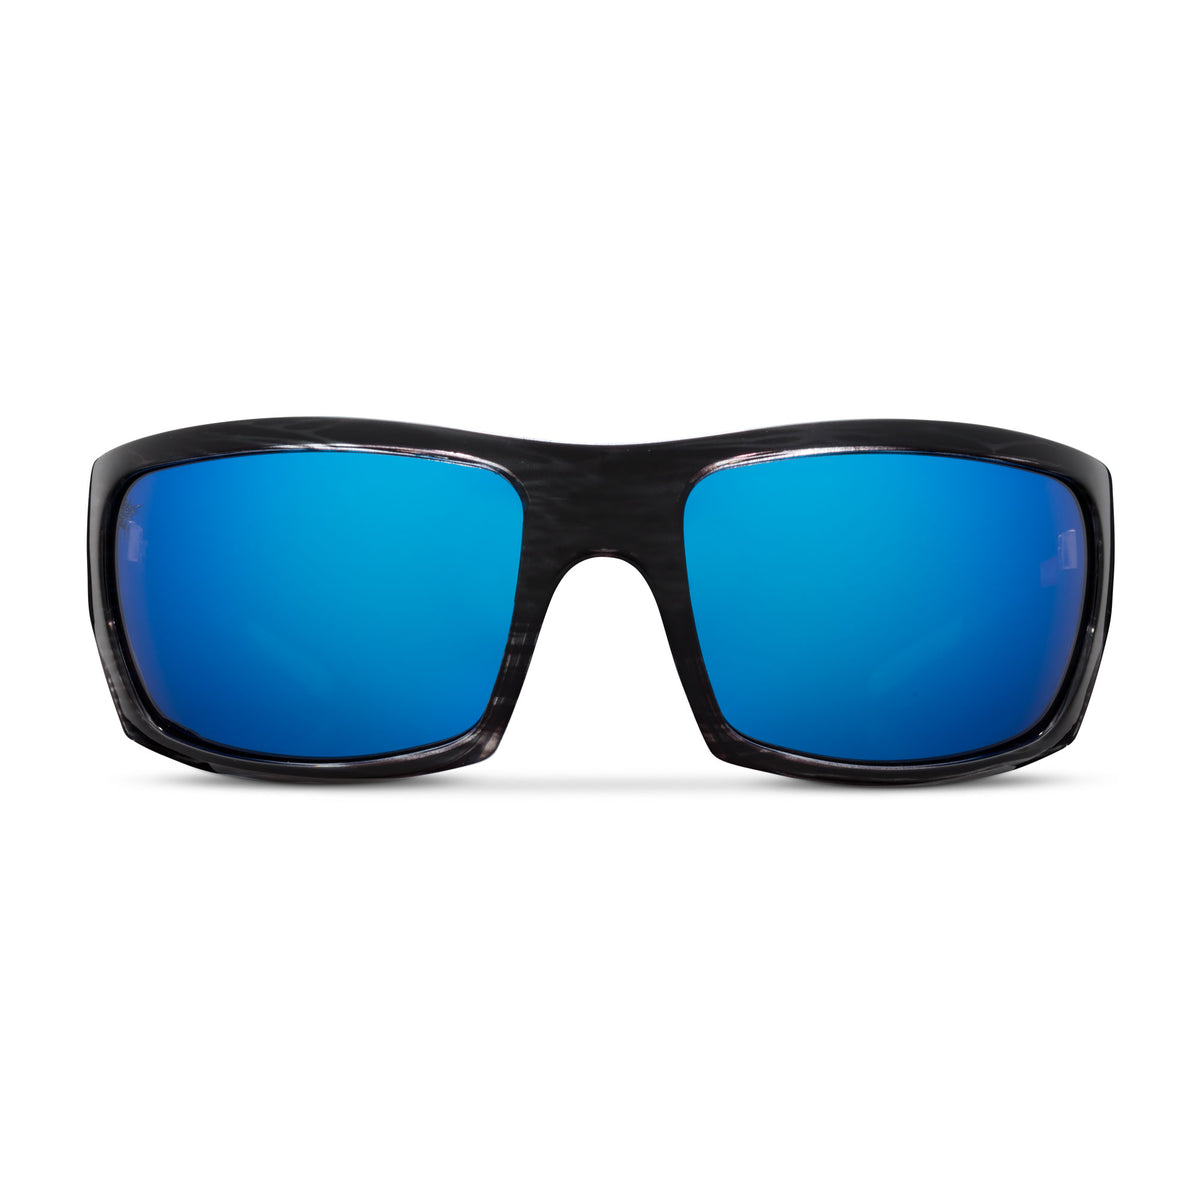 The Mack - Polarized Mineral Glass™ Big Image - 2